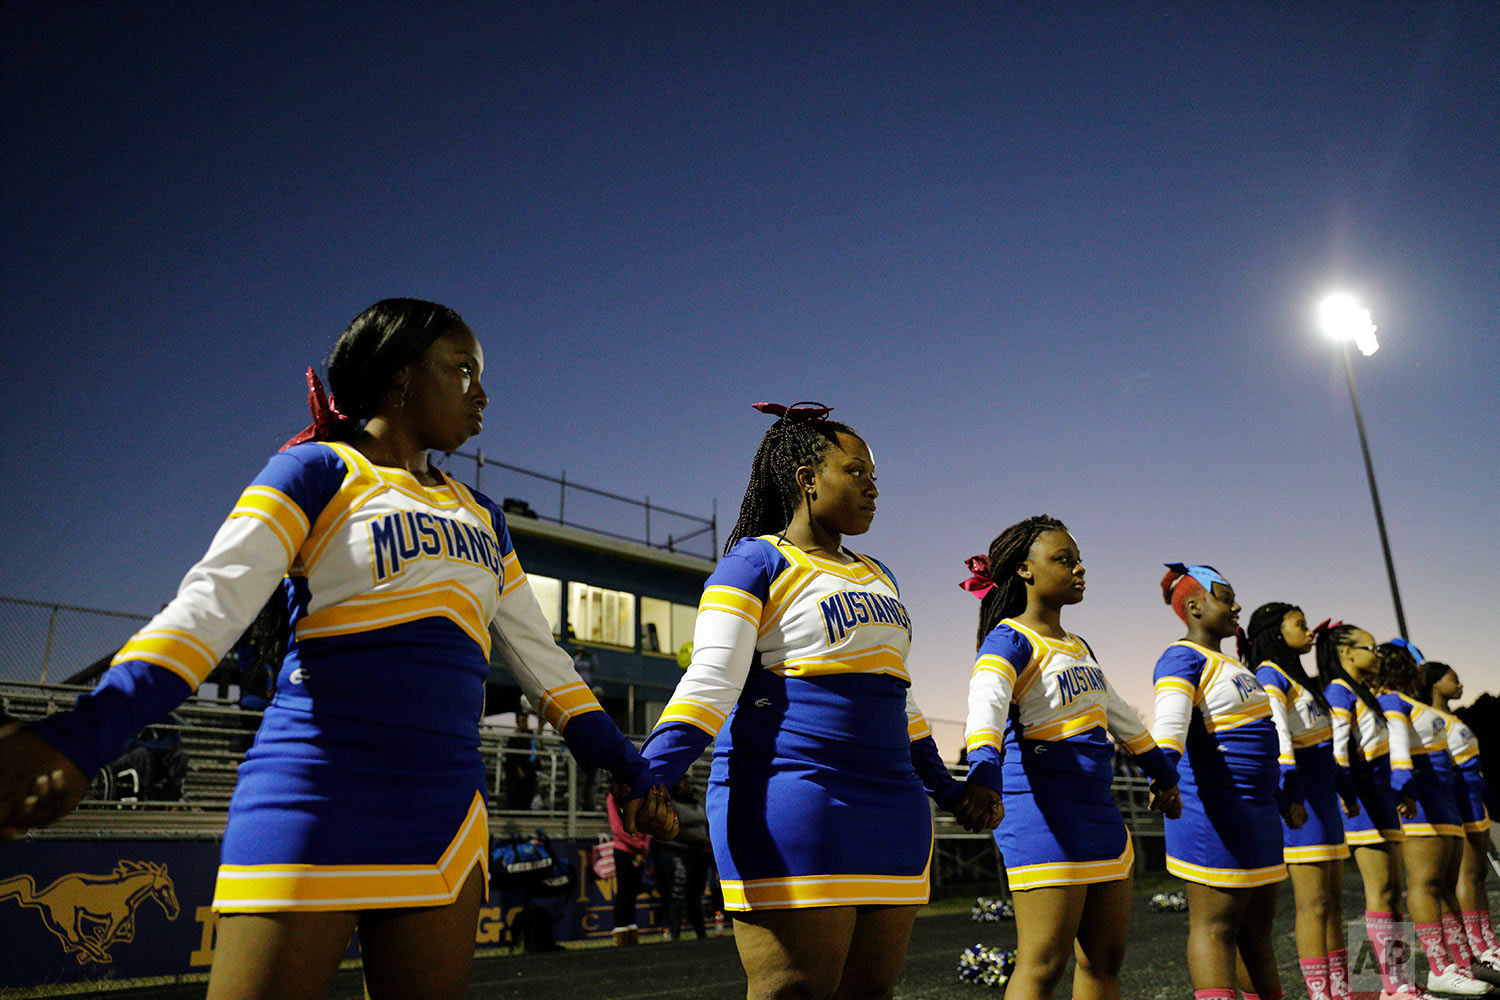 South Robeson High School cheerleaders join hands during the national anthem before a football game in Rowland, N.C., Friday, Oct. 27, 2017. (AP Photo/David Goldman)